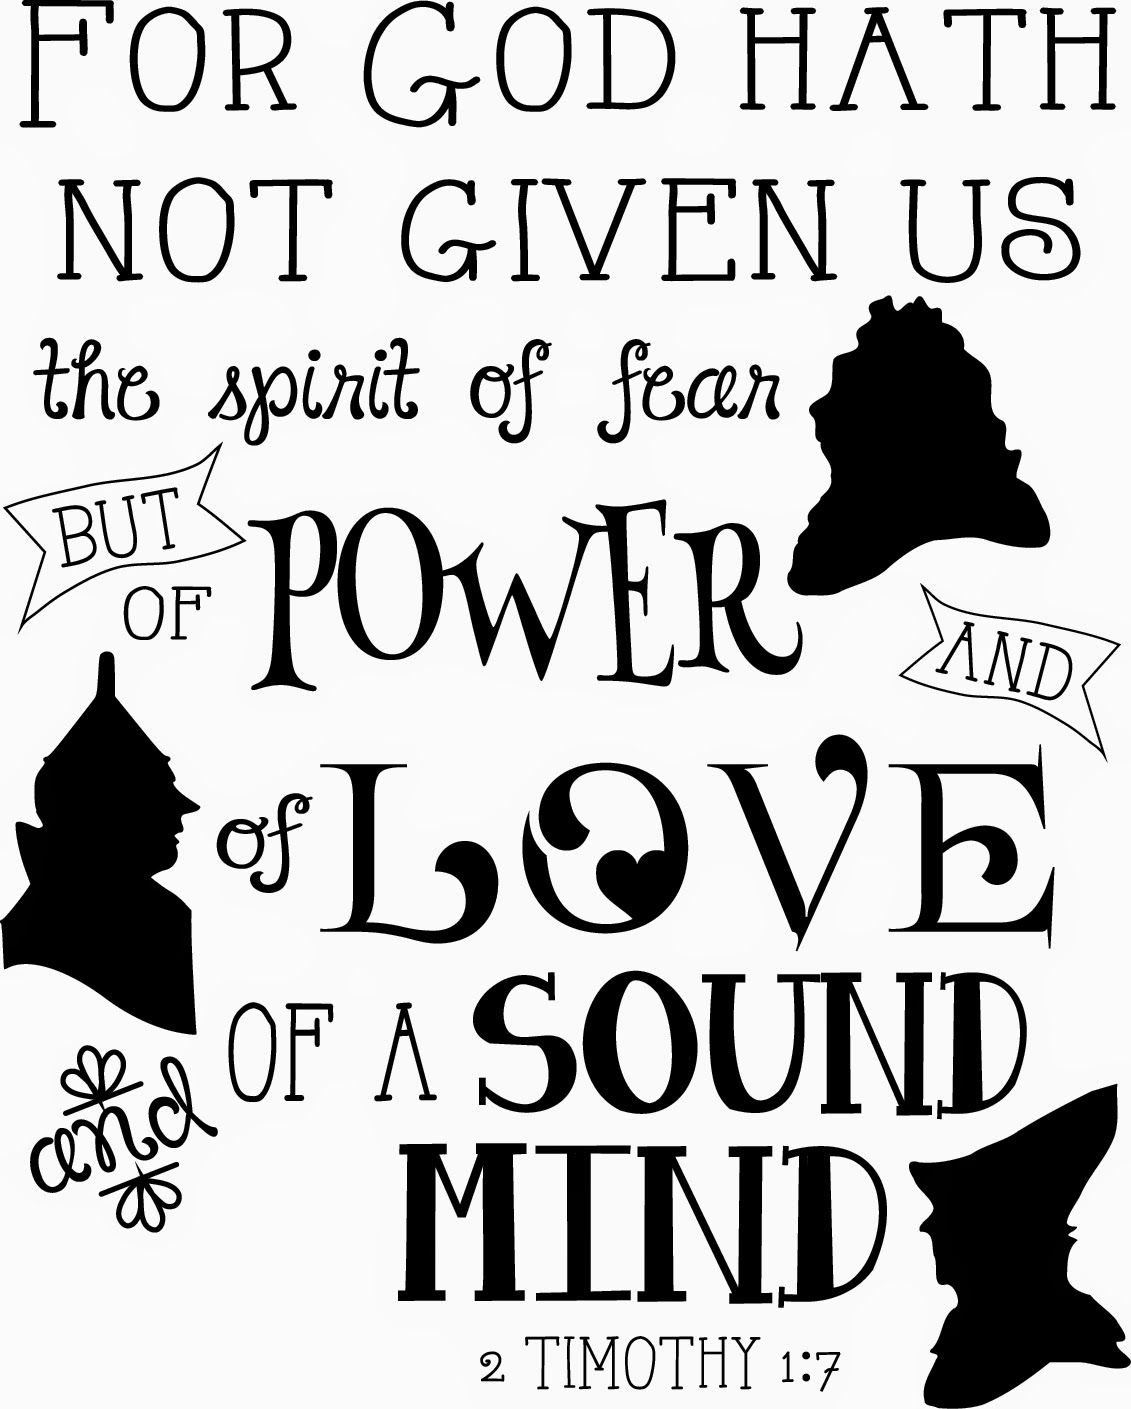 Wizard of oz quotes - Relief Society Activities Wizard Of Oz Visiting Teaching Lesson